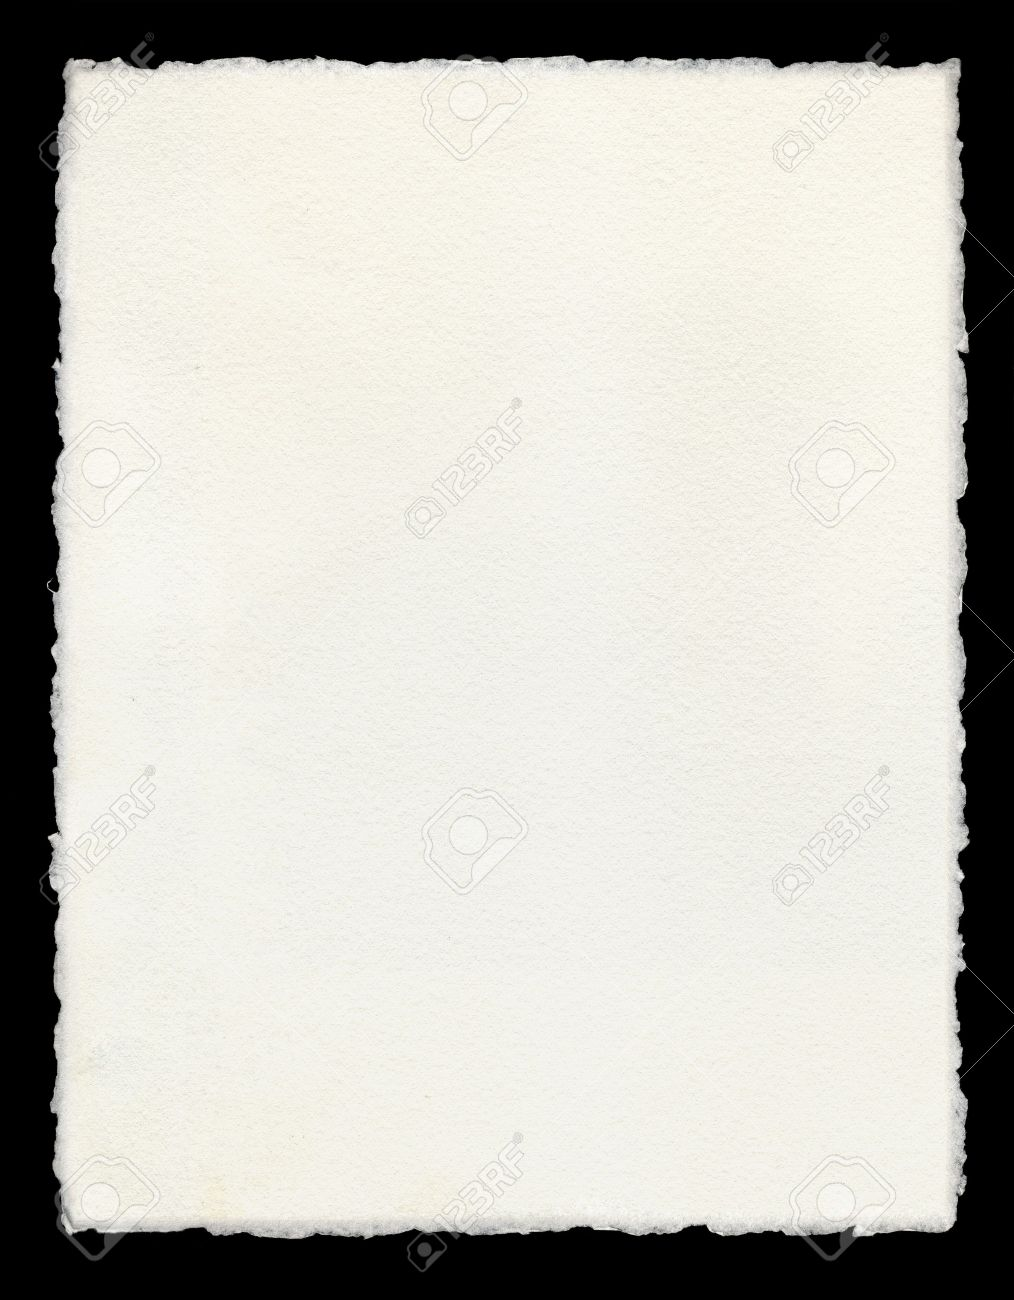 Watercolor paper with true deckled edges. - 10032628